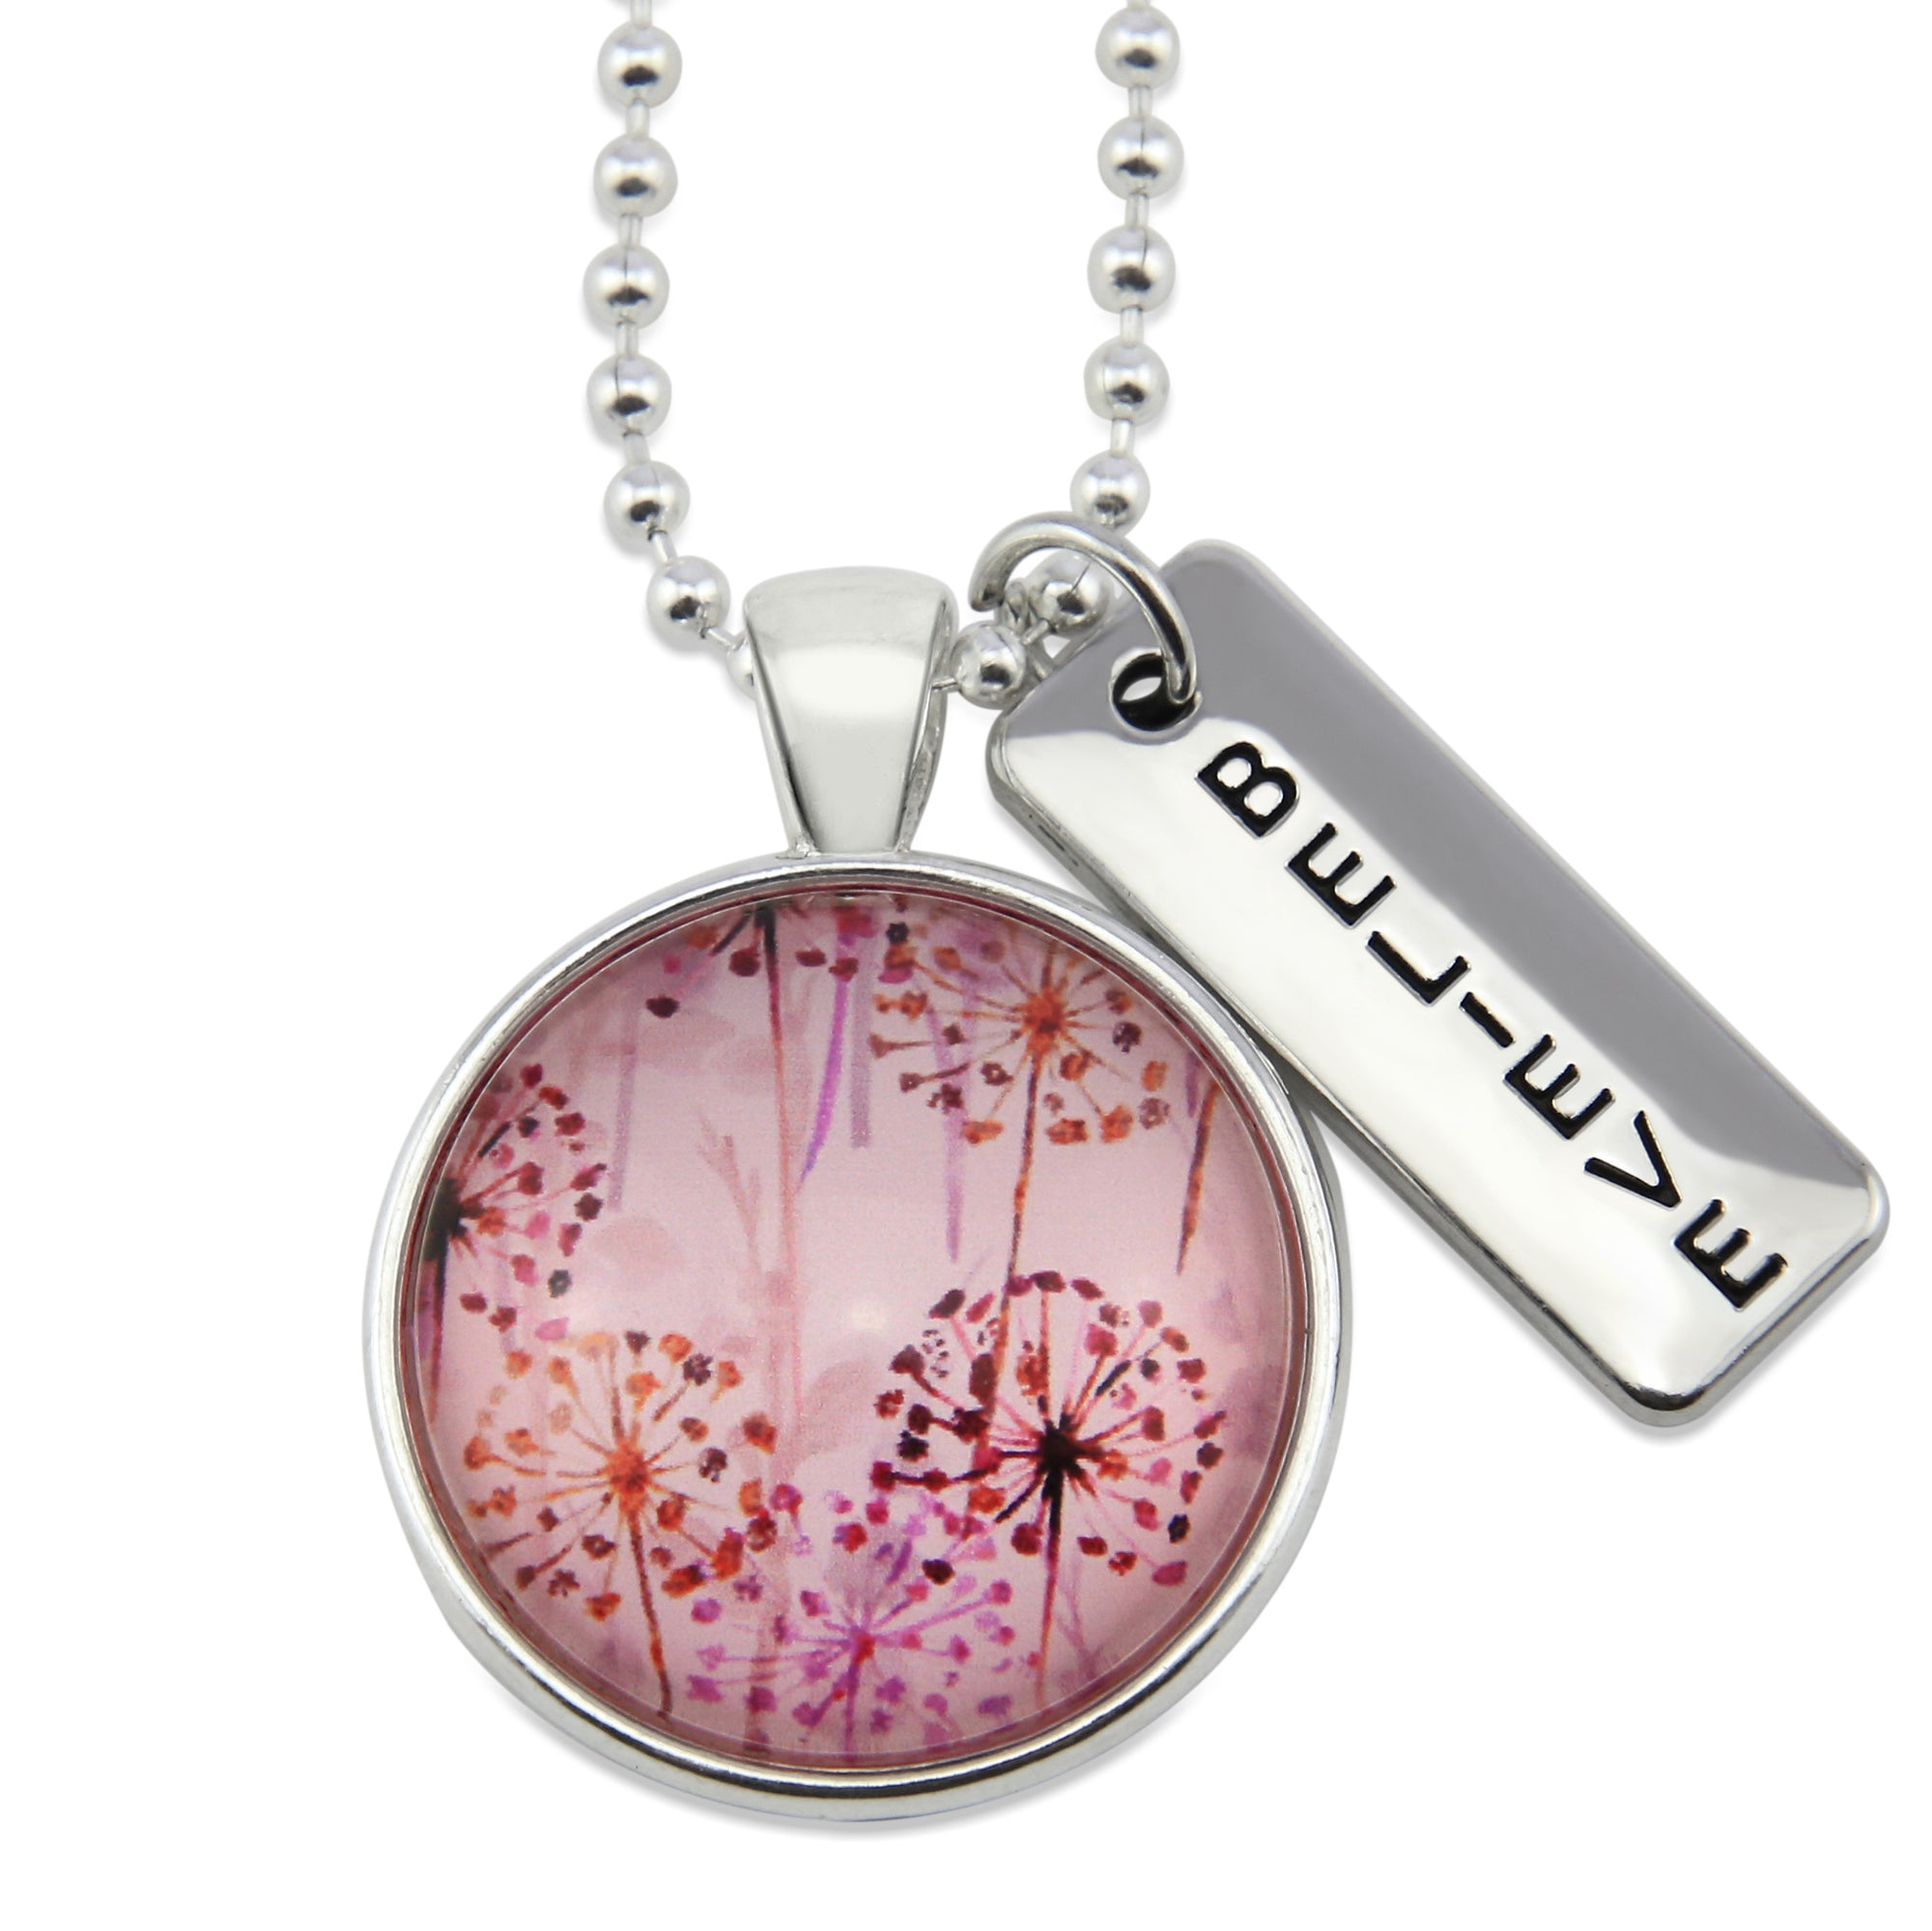 PINK COLLECTION - Bright Silver 'BELIEVE' Necklace - Pink Wish (10335)